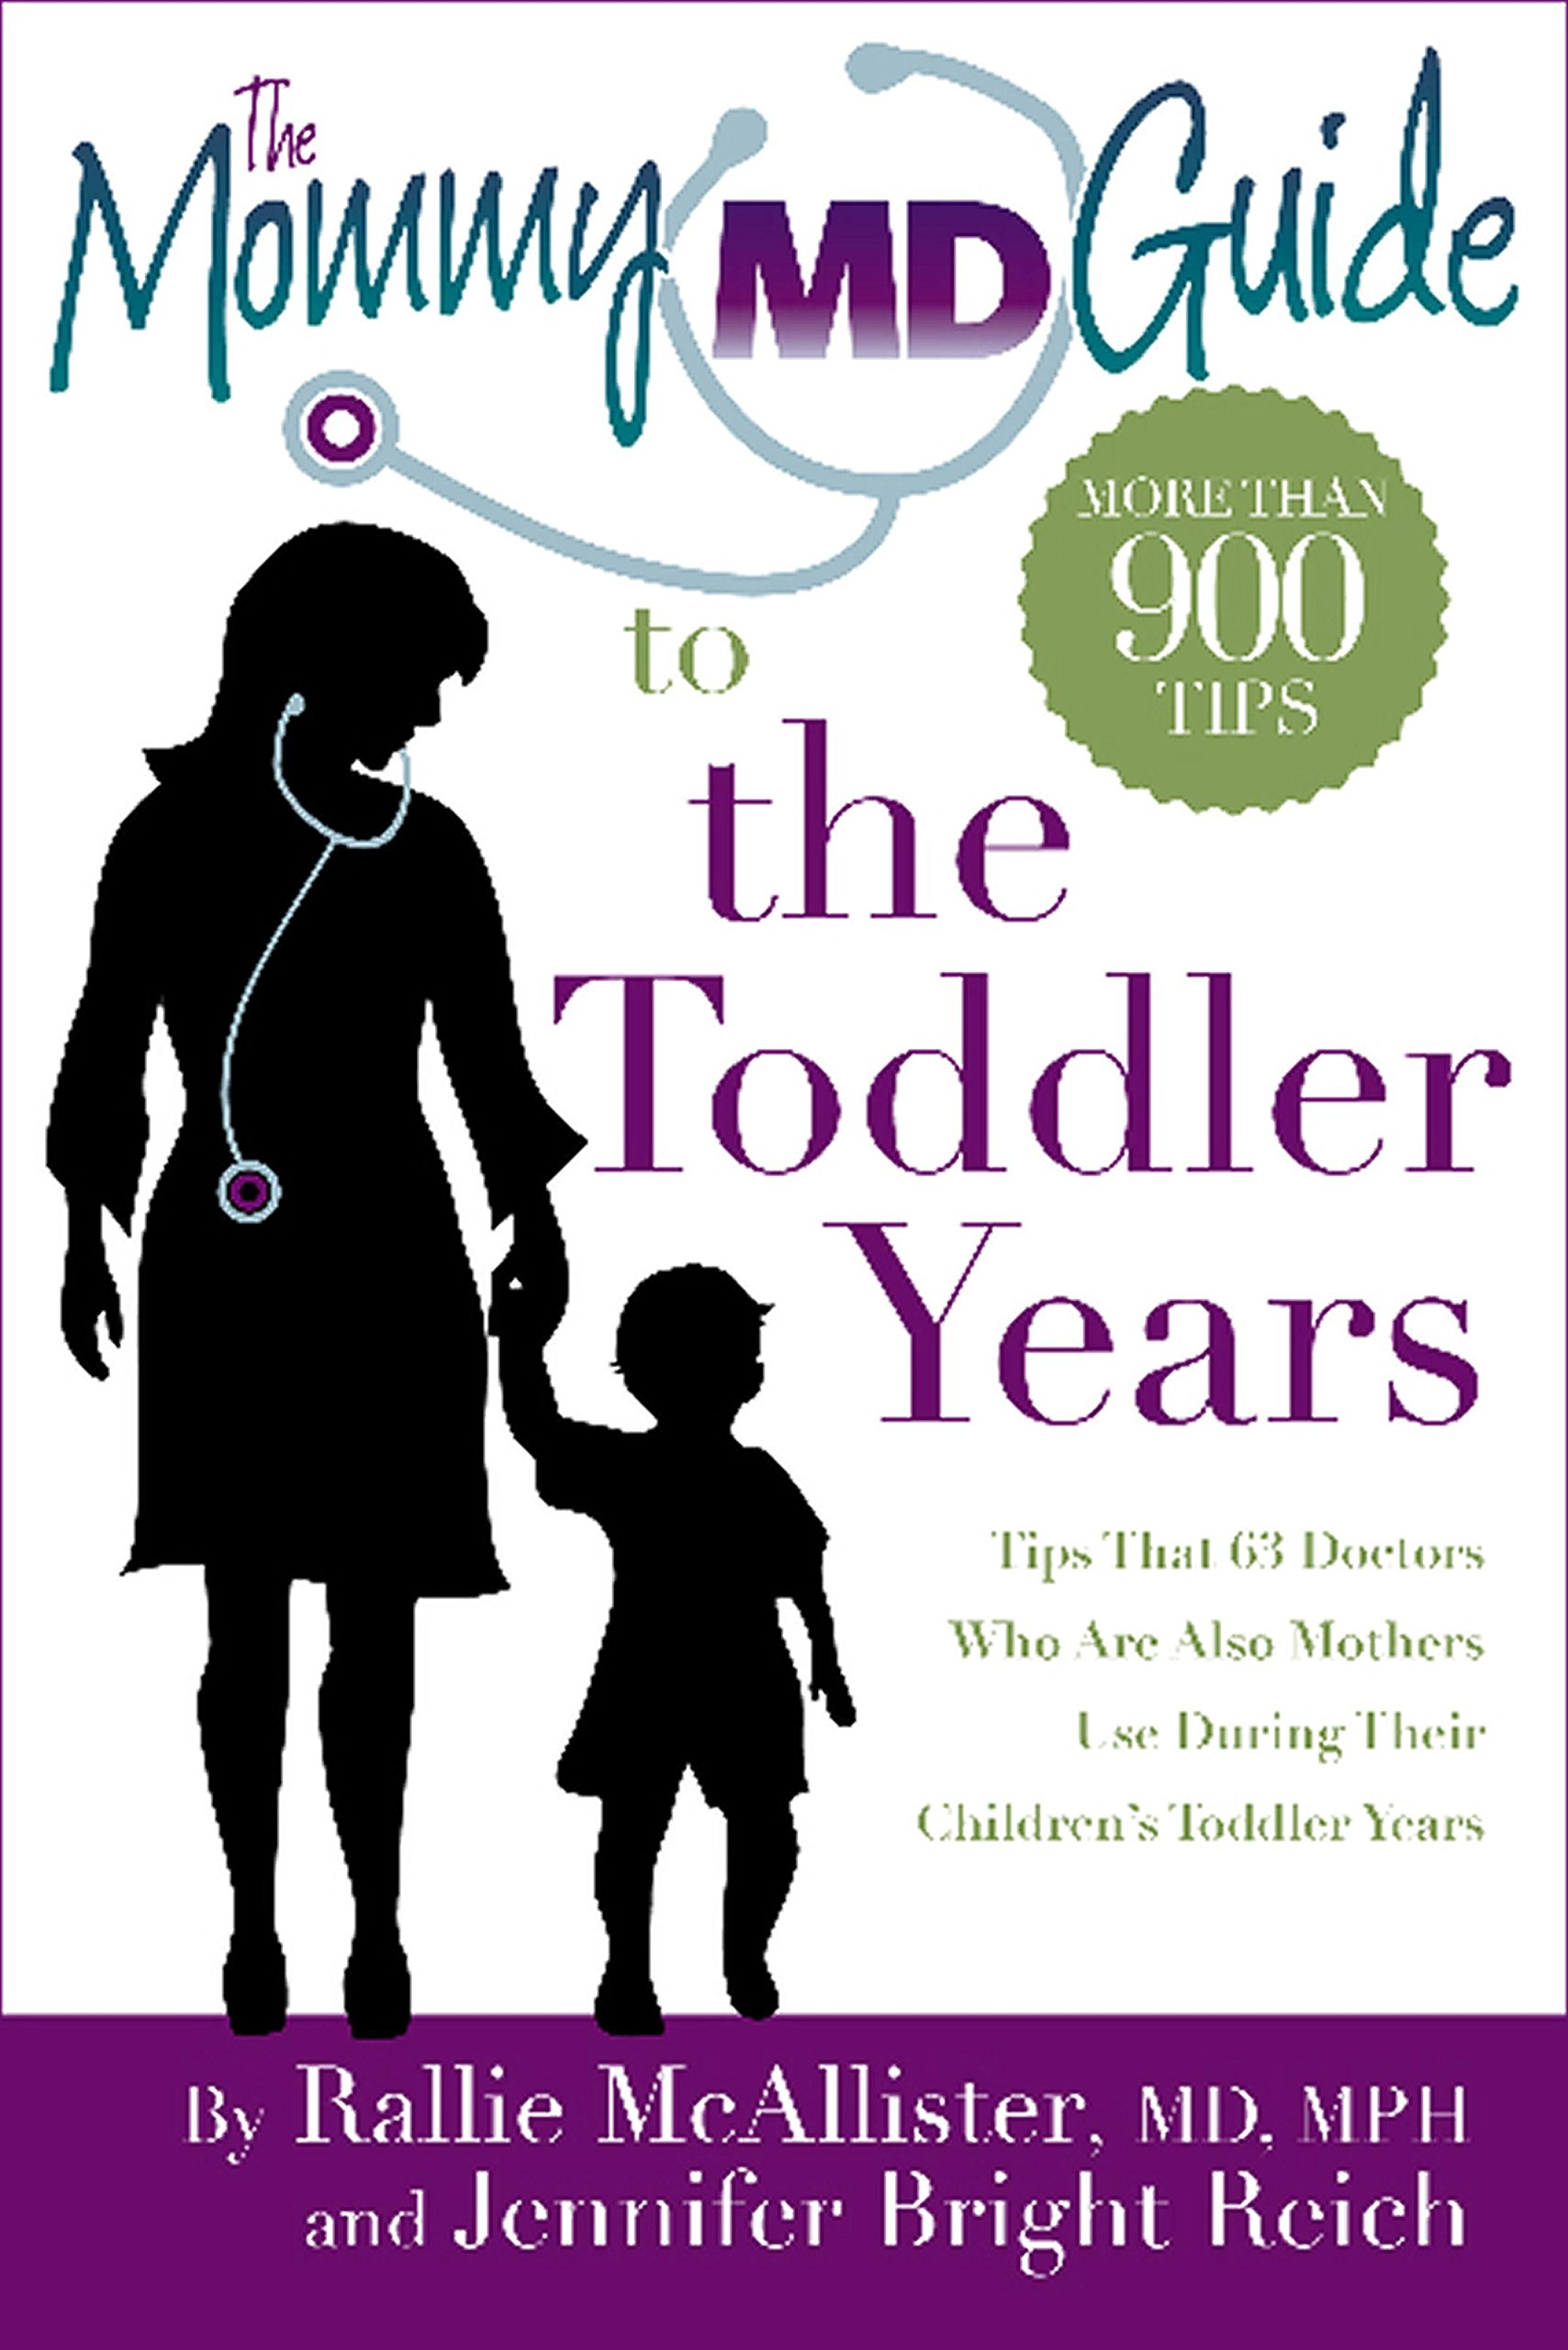 The Mommy MD Guide to the Toddler Years: More than 900 tips that 63 doctors who are also mothers use during their children's toddler years (Mommy MD Guides)